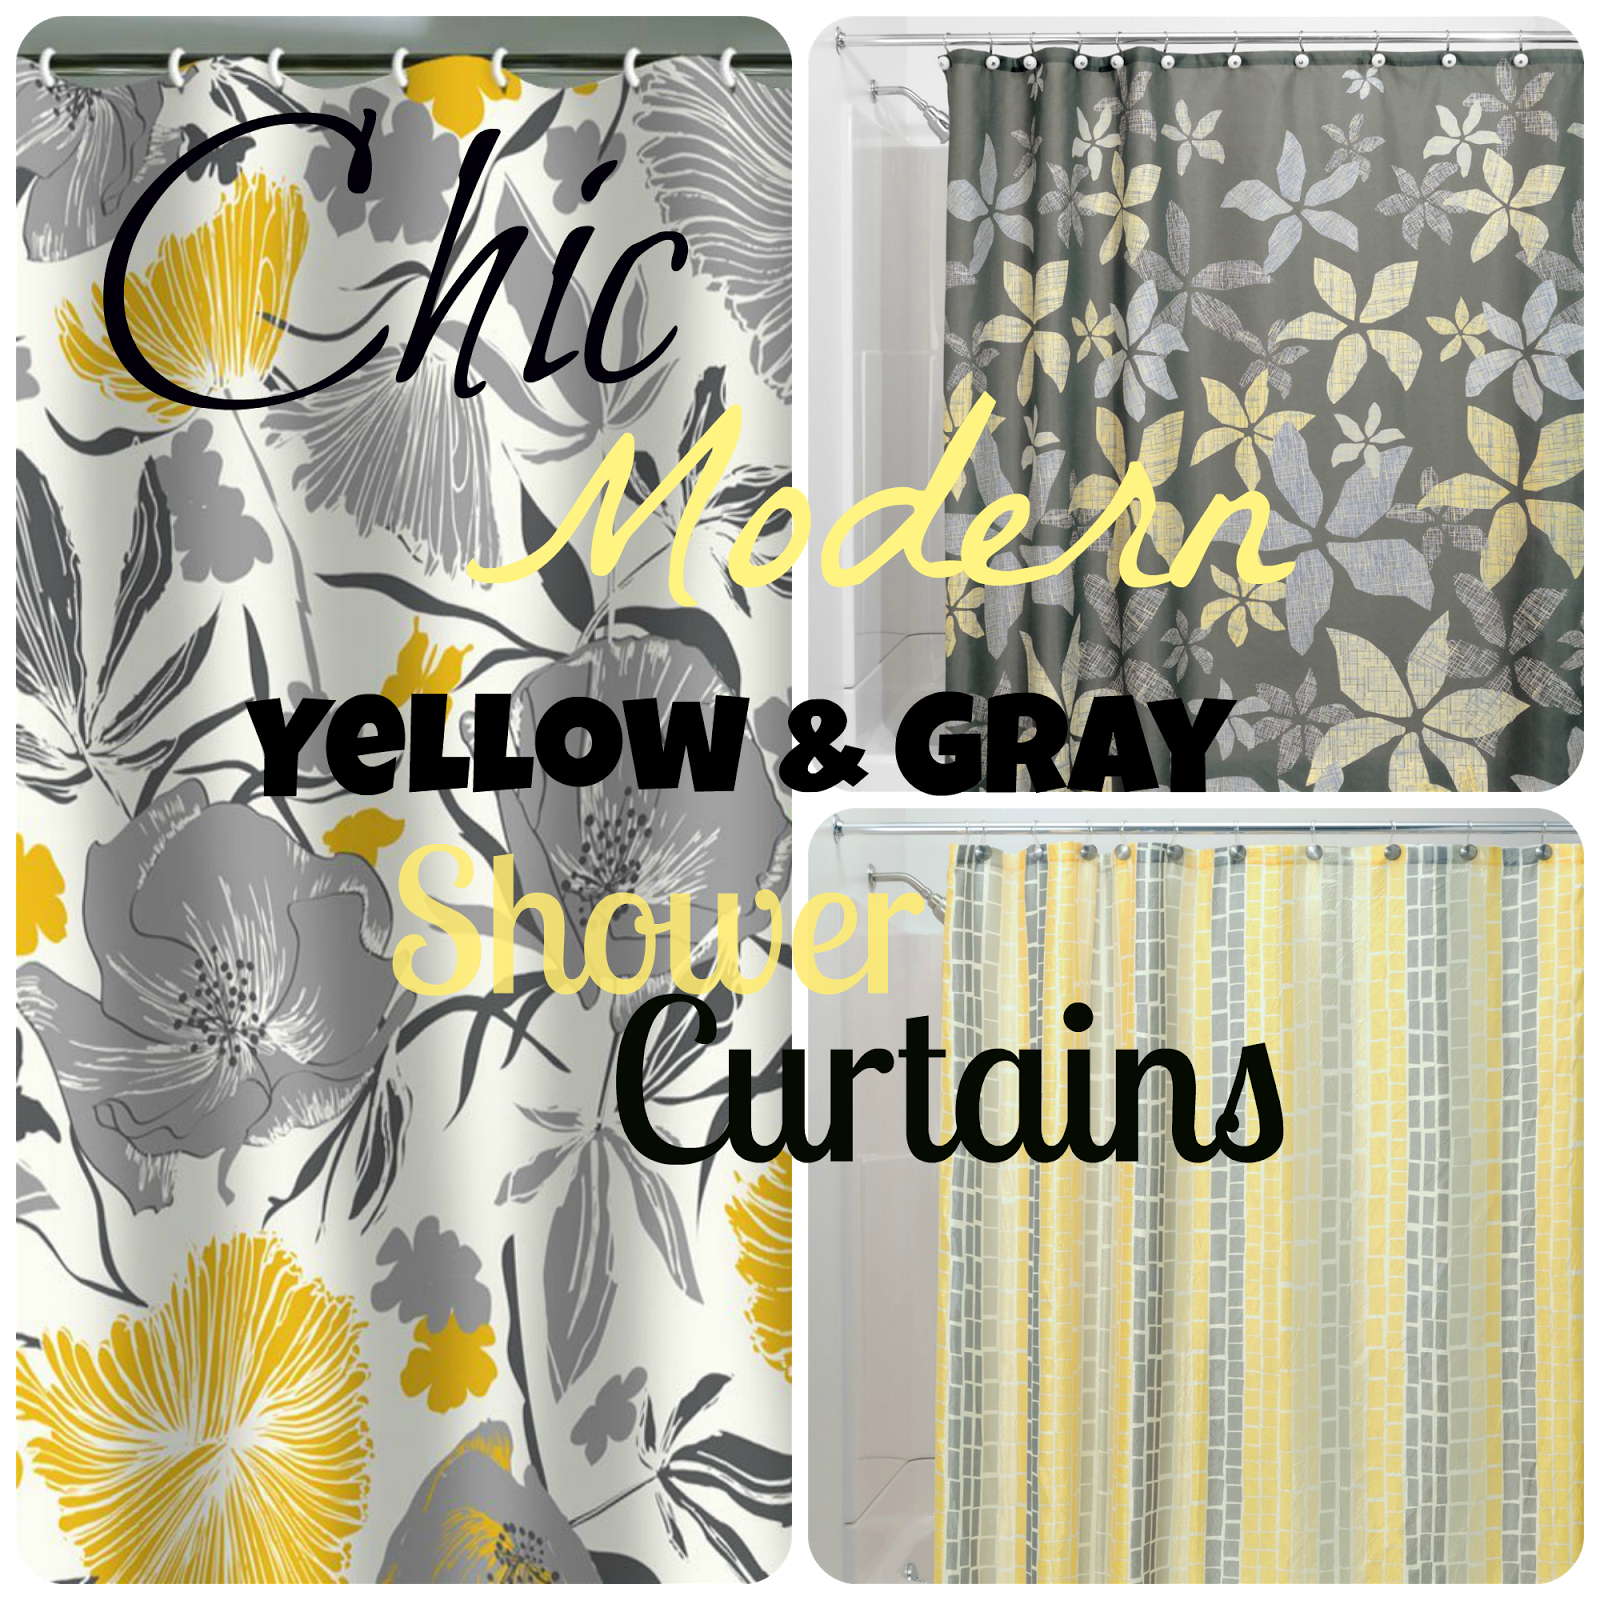 Yellow Gray And White Bedroom: Chic & Affordable Yellow And Gray Shower Curtains